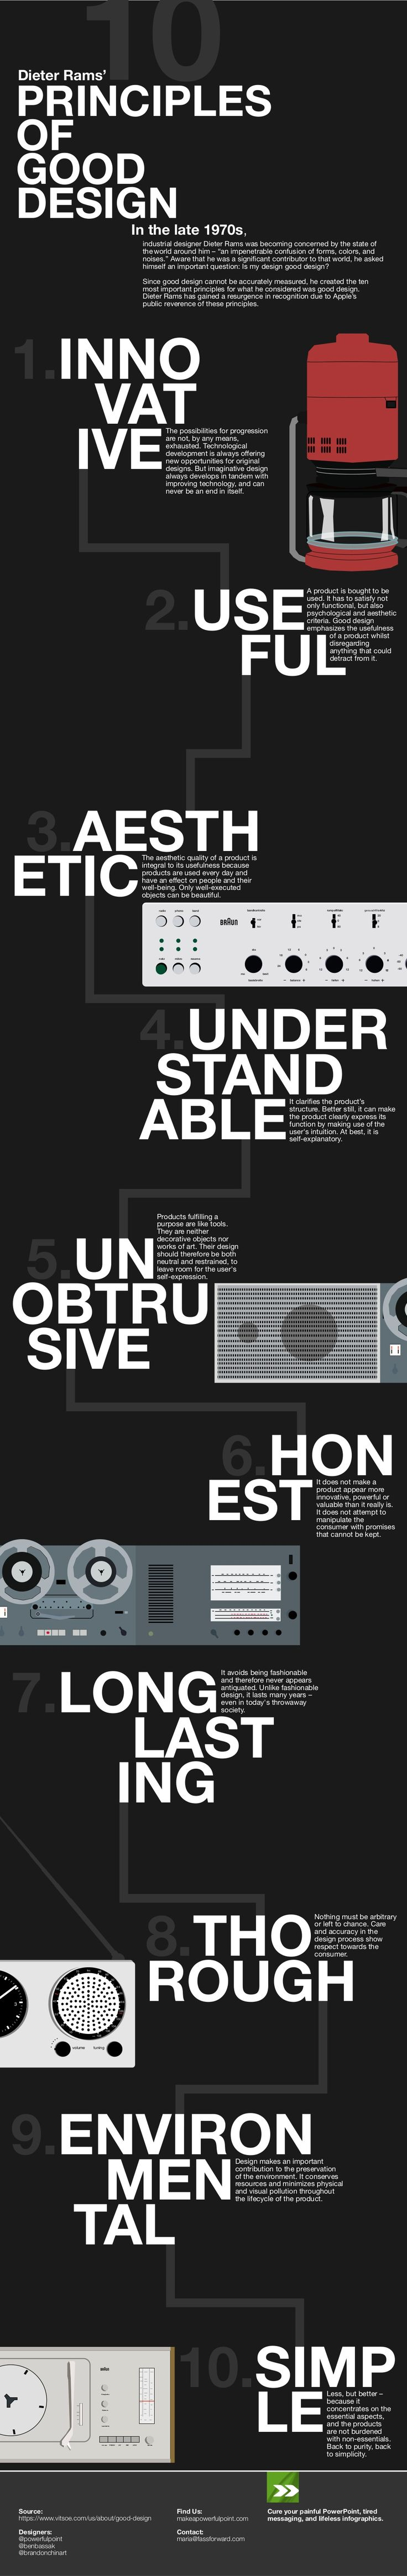 Poster design principles - Principles Of Good Design 1 Inno Vat Ive The Possibilities For Progression Are Not